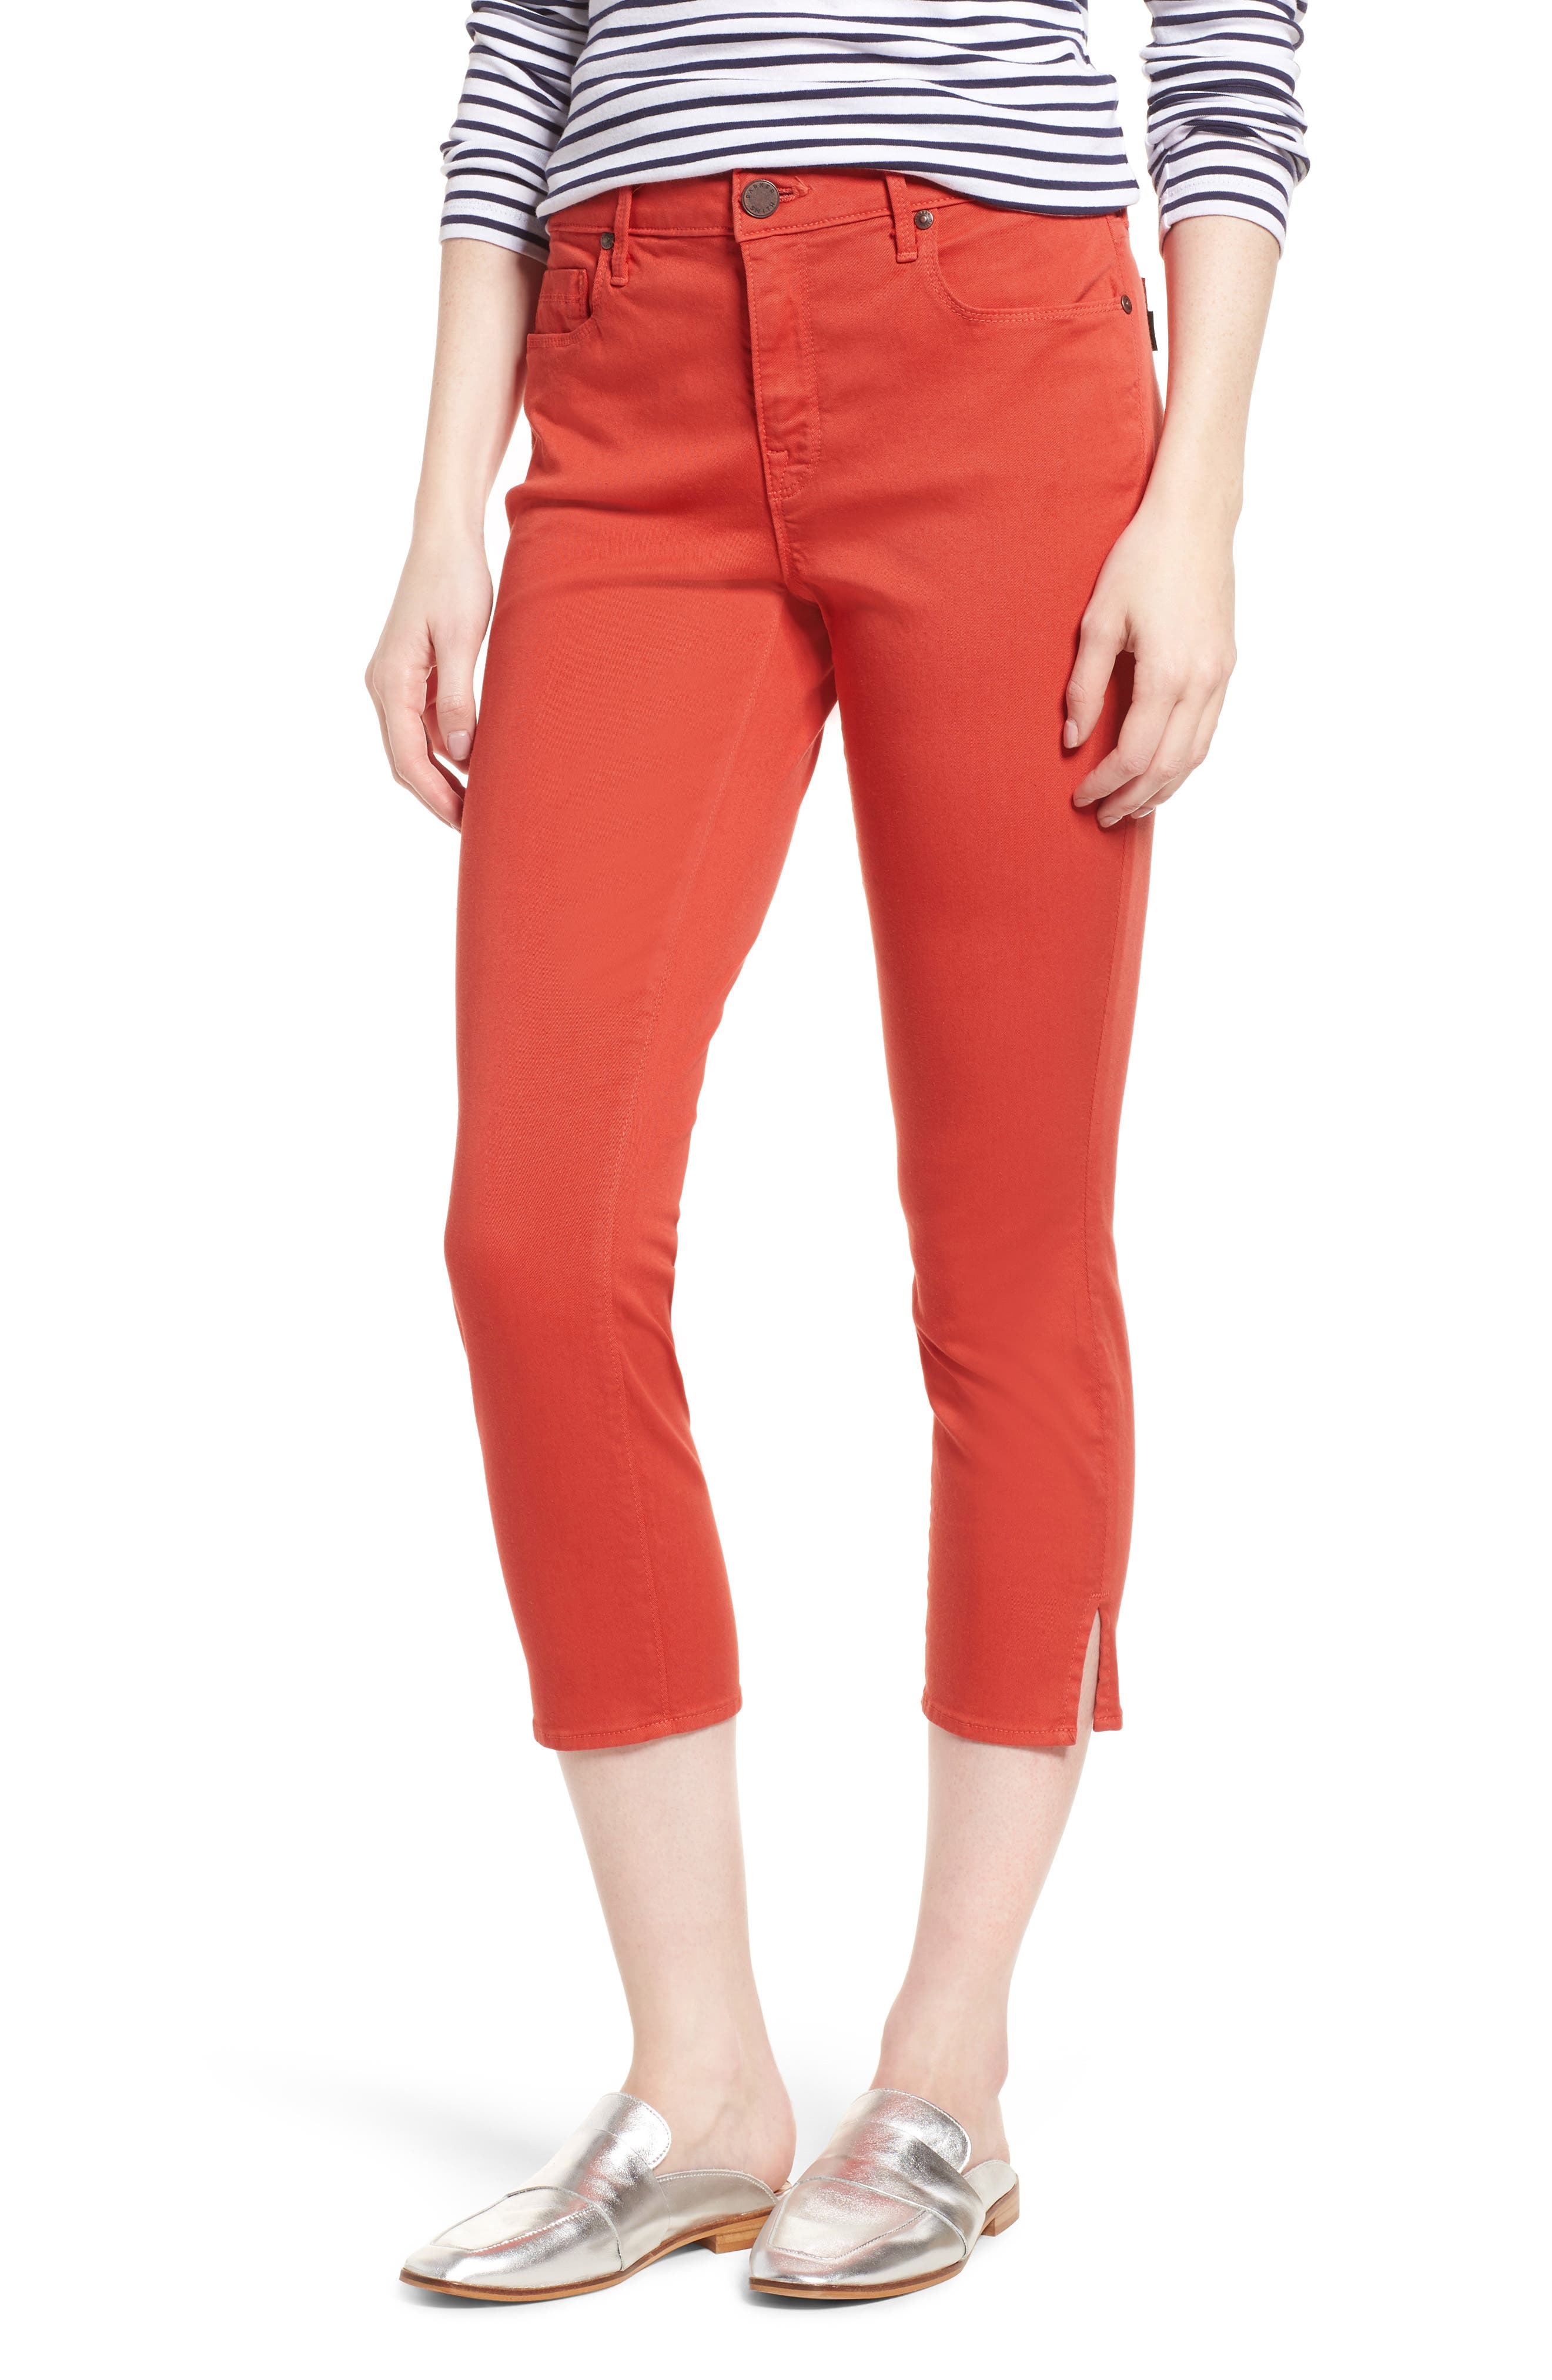 Pedal Pusher Crop Jeans,                             Main thumbnail 1, color,